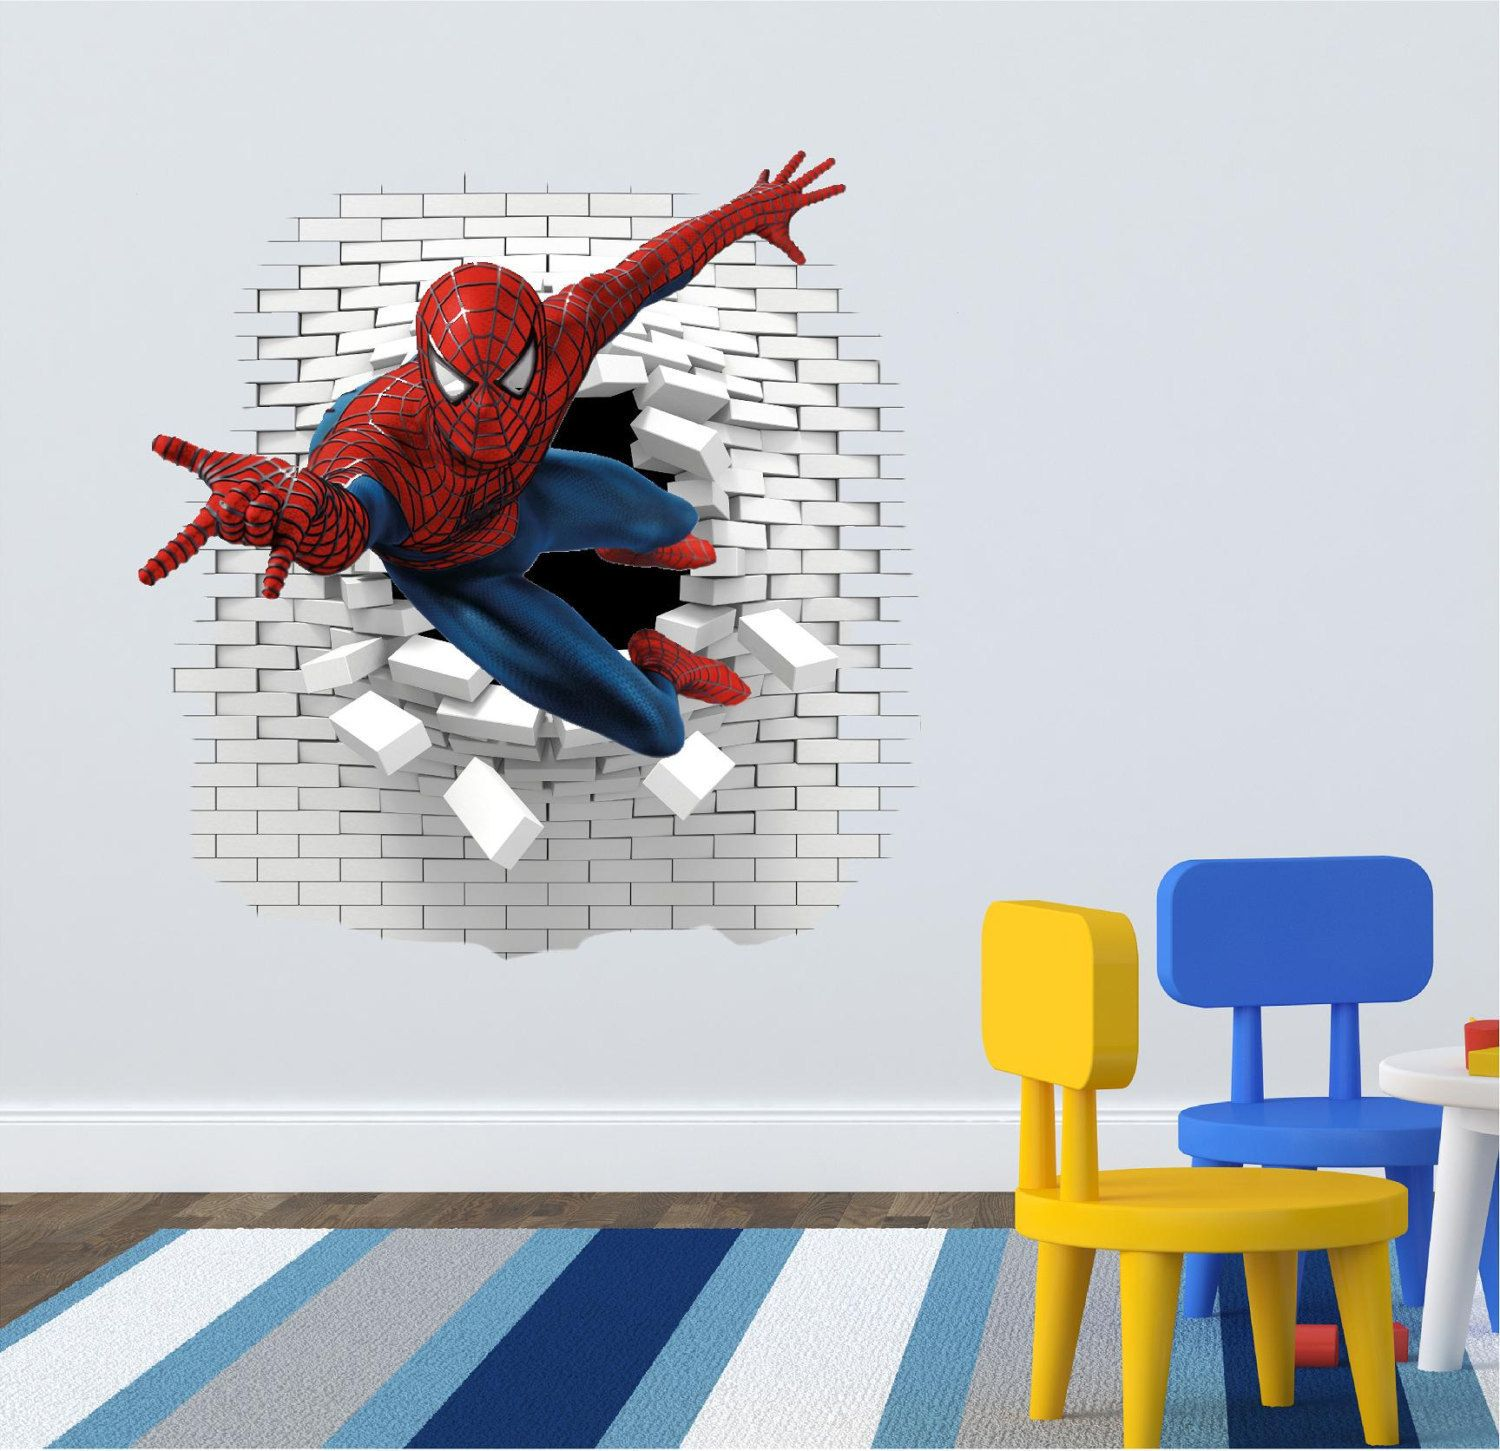 3d spiderman wall decal great for the kids room by artogtext on 3d spiderman wall decal great for the kids room by artogtext on etsy amipublicfo Choice Image